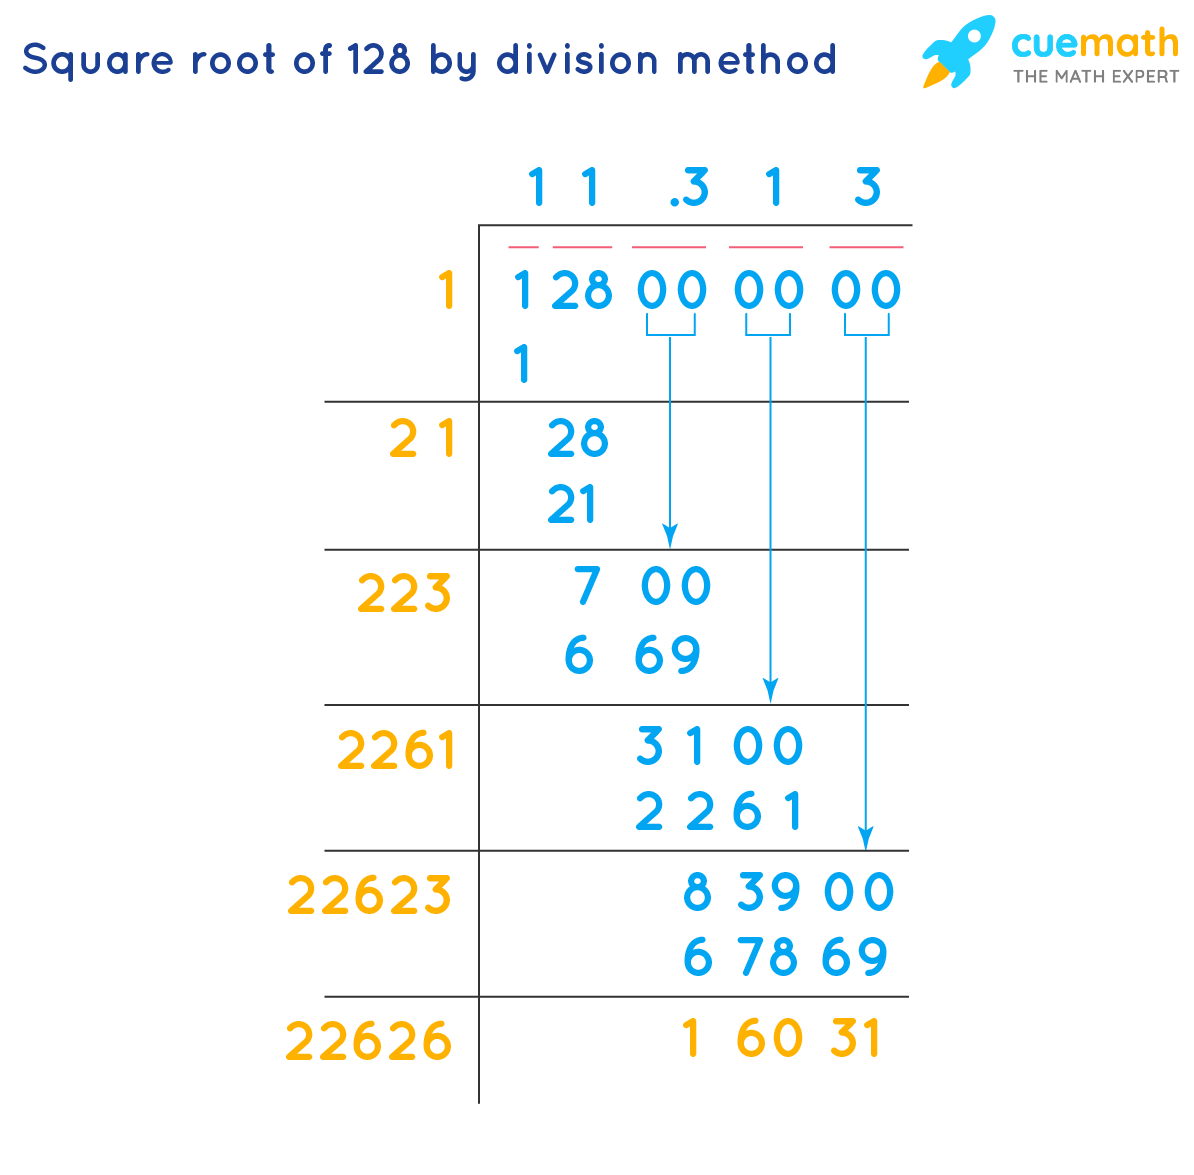 Square root of 128 by division method